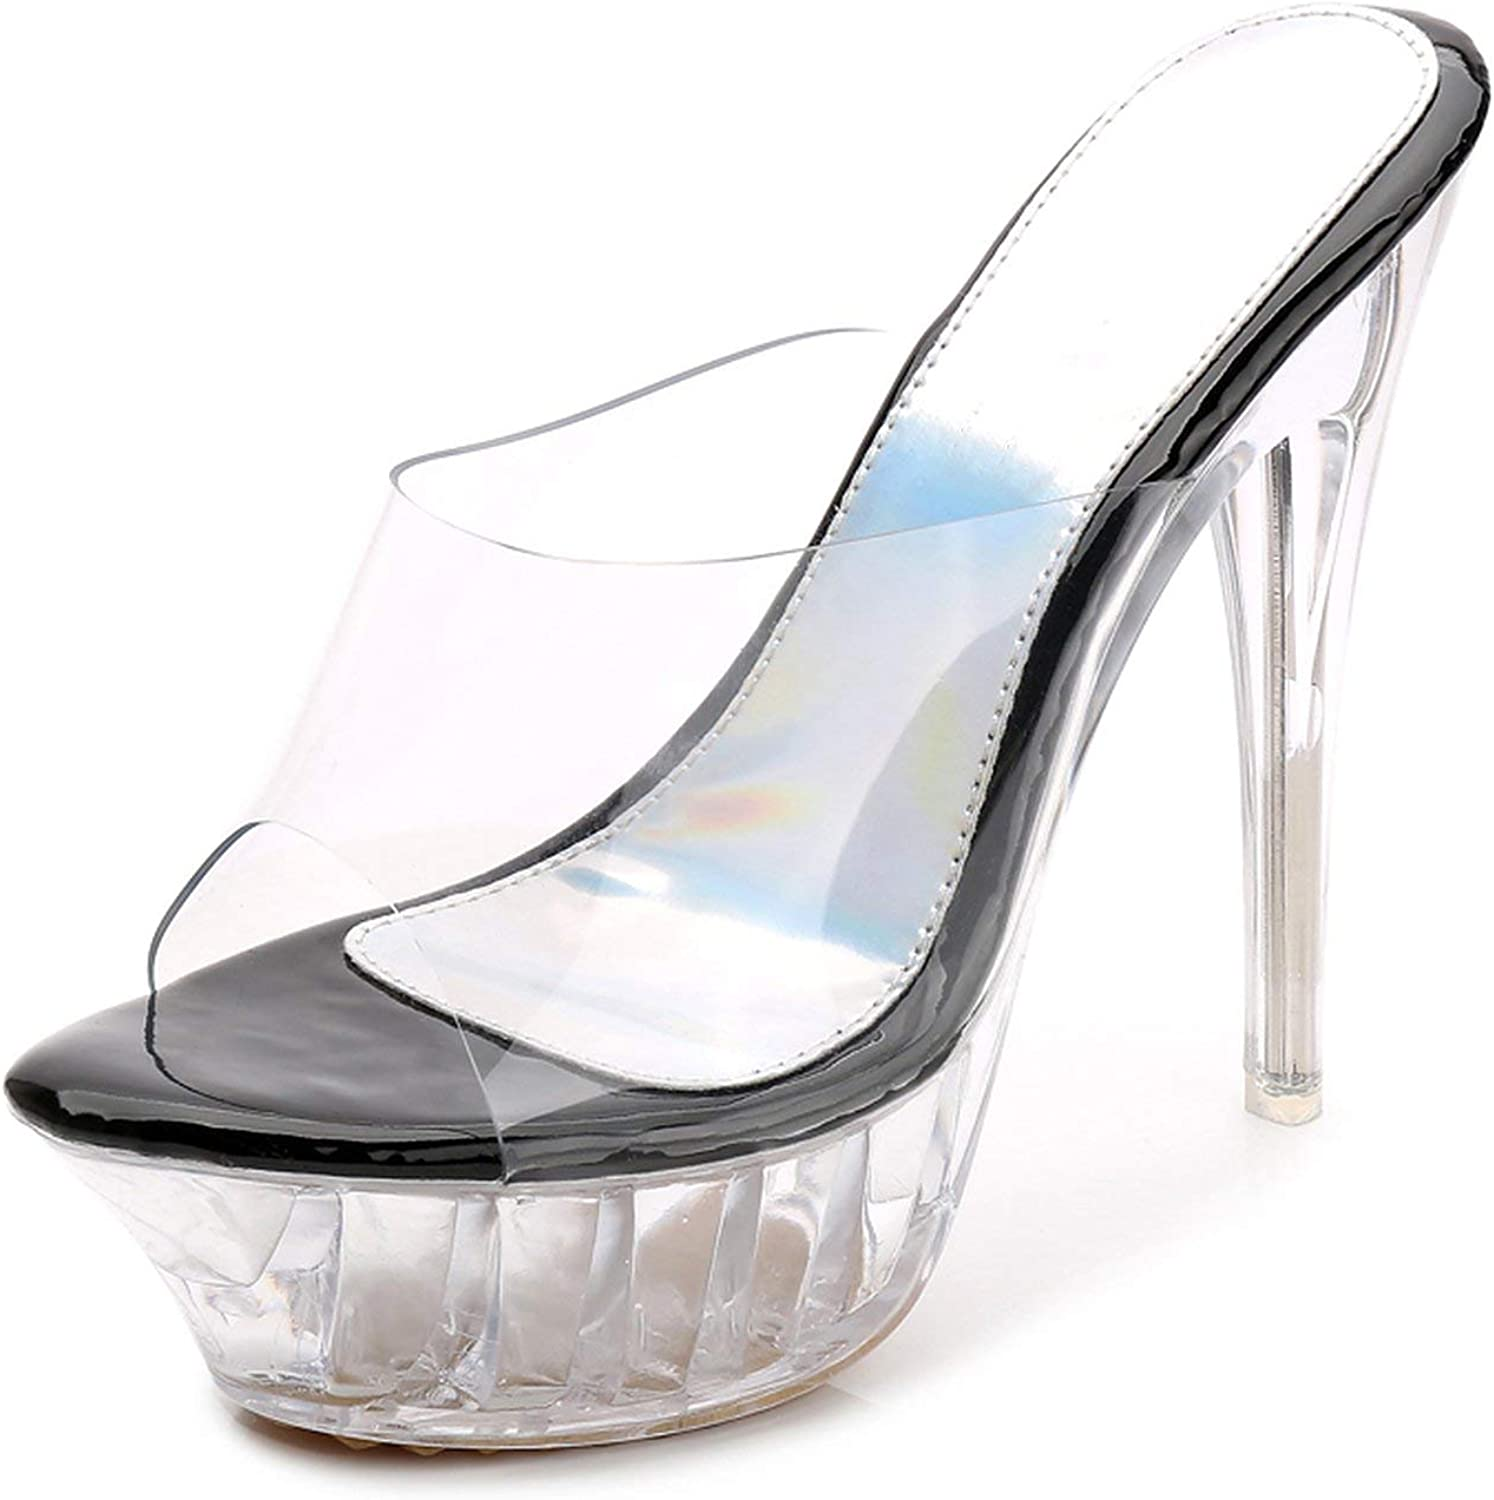 Transparent Thin High Heels Sandals Ladies Casual Sandals Slippers Women Fashion Crystal shoes